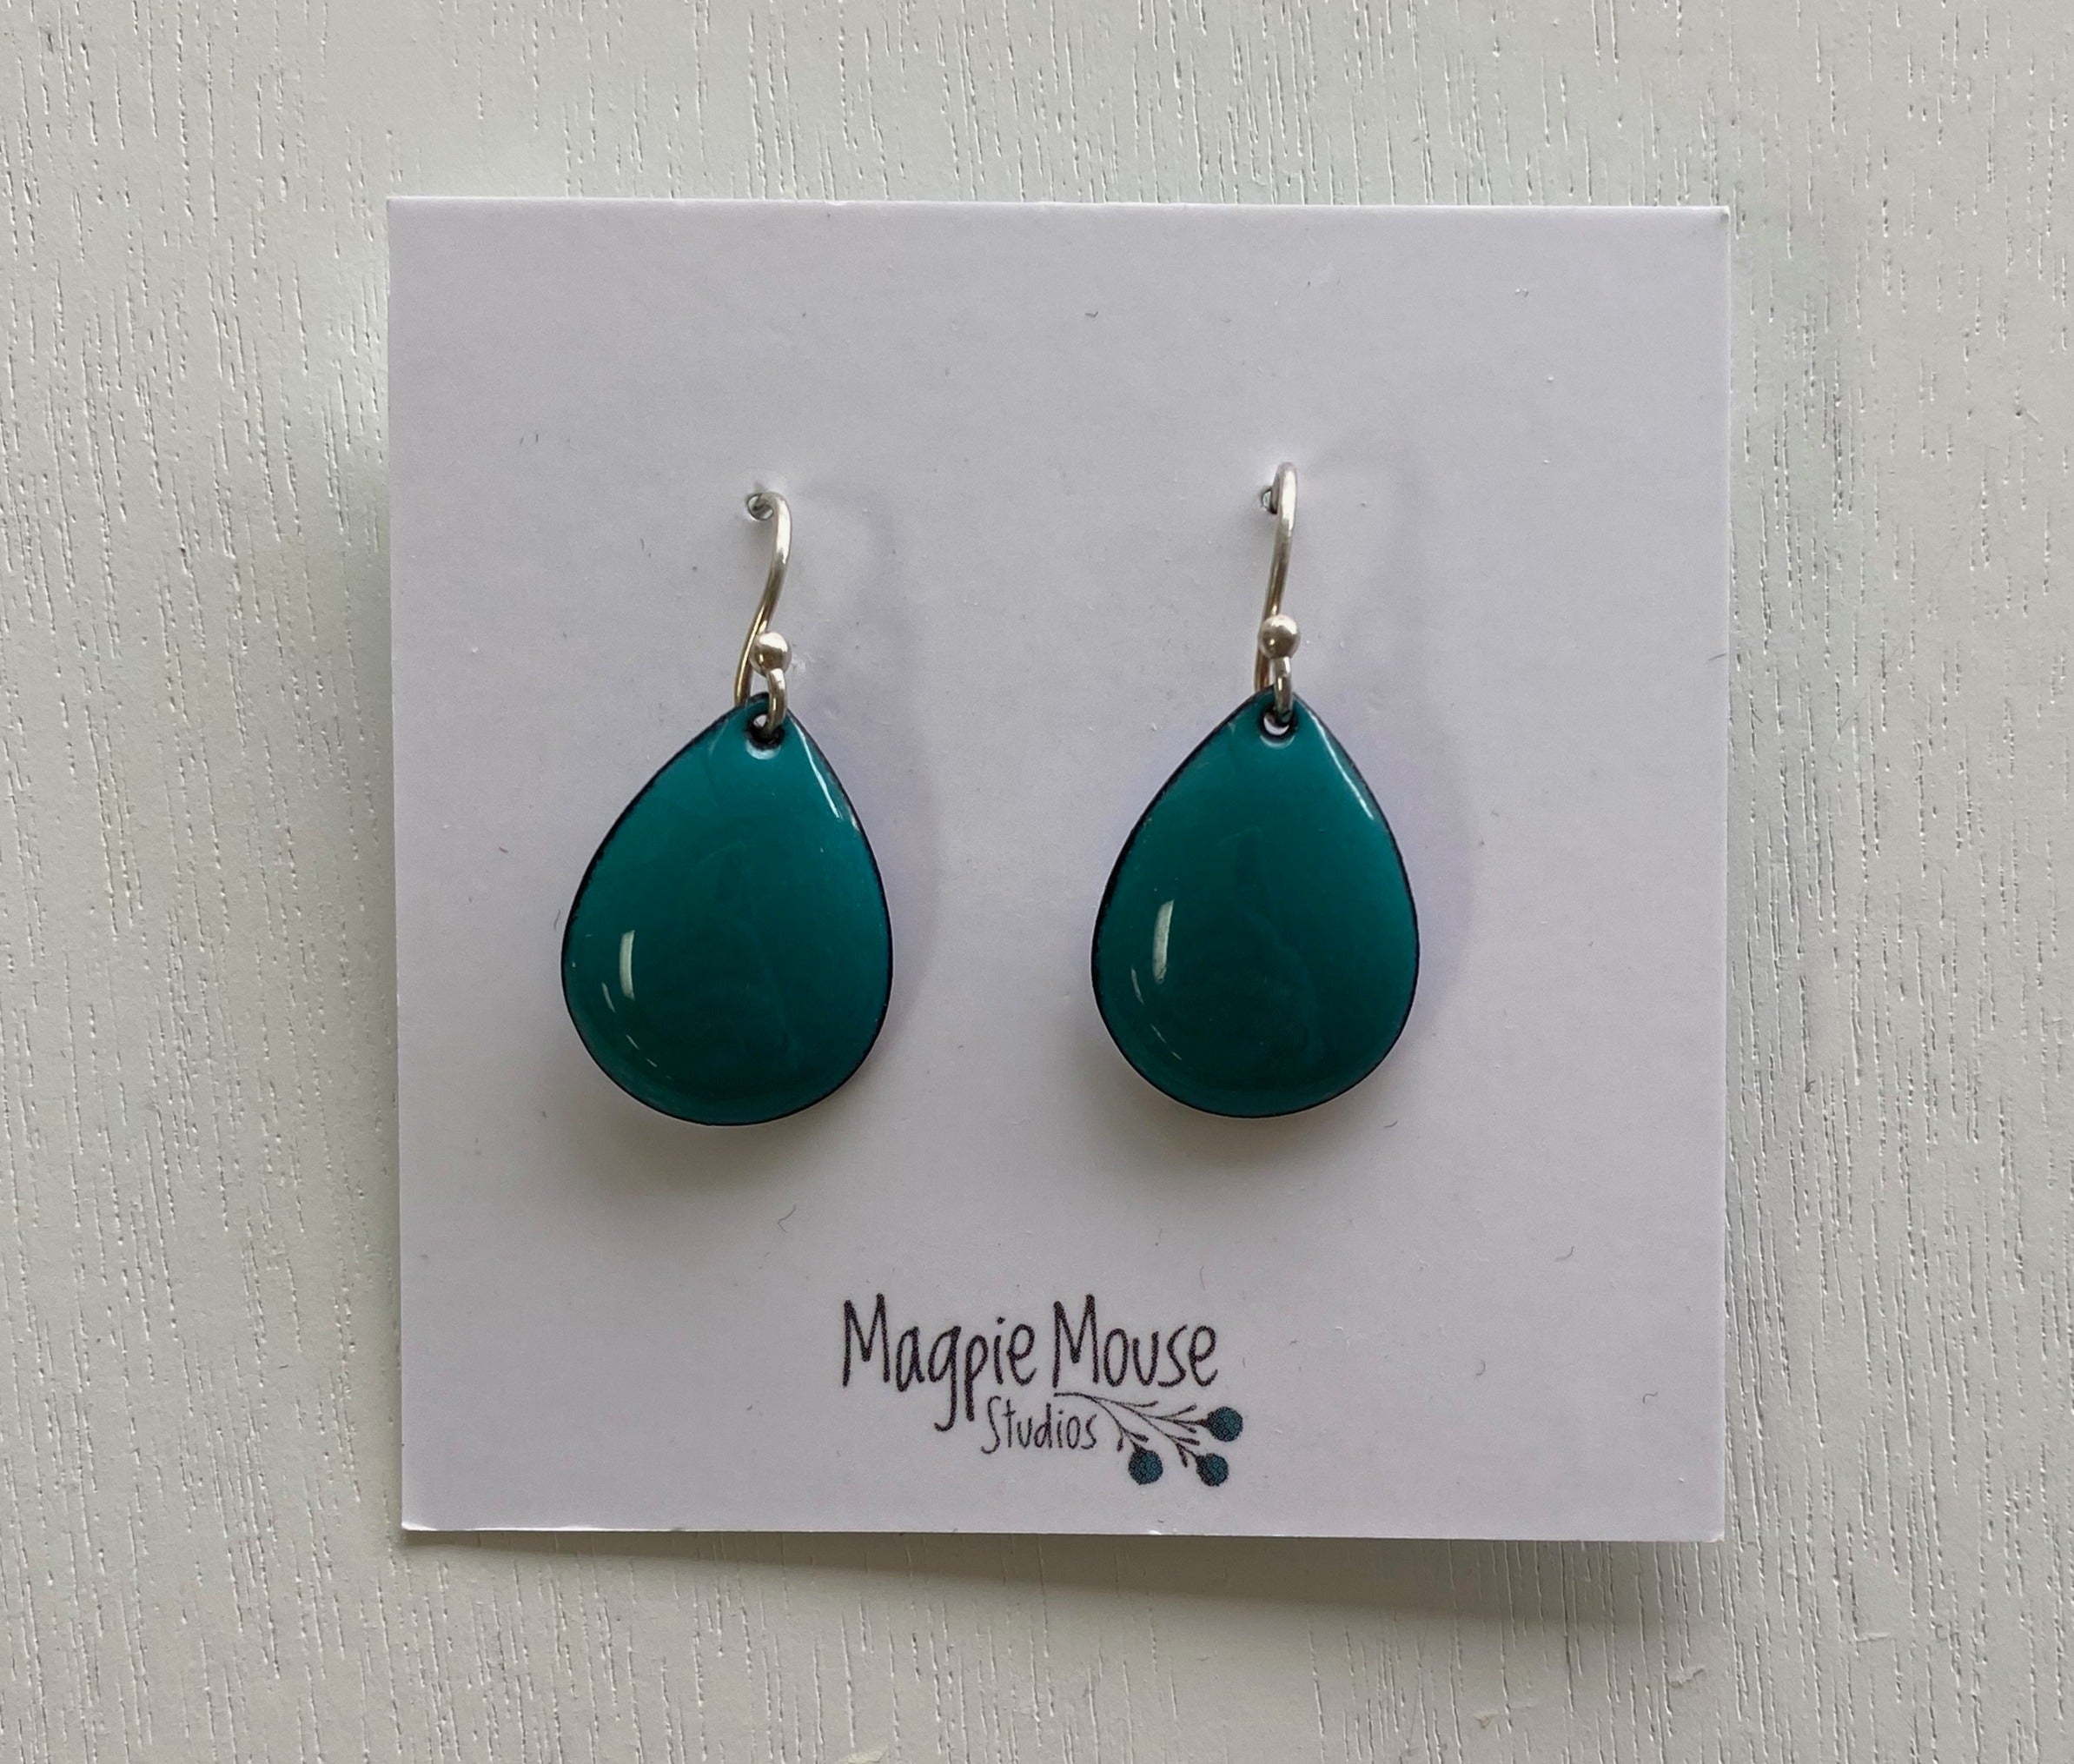 Magpie Mouse Studios Jewelry